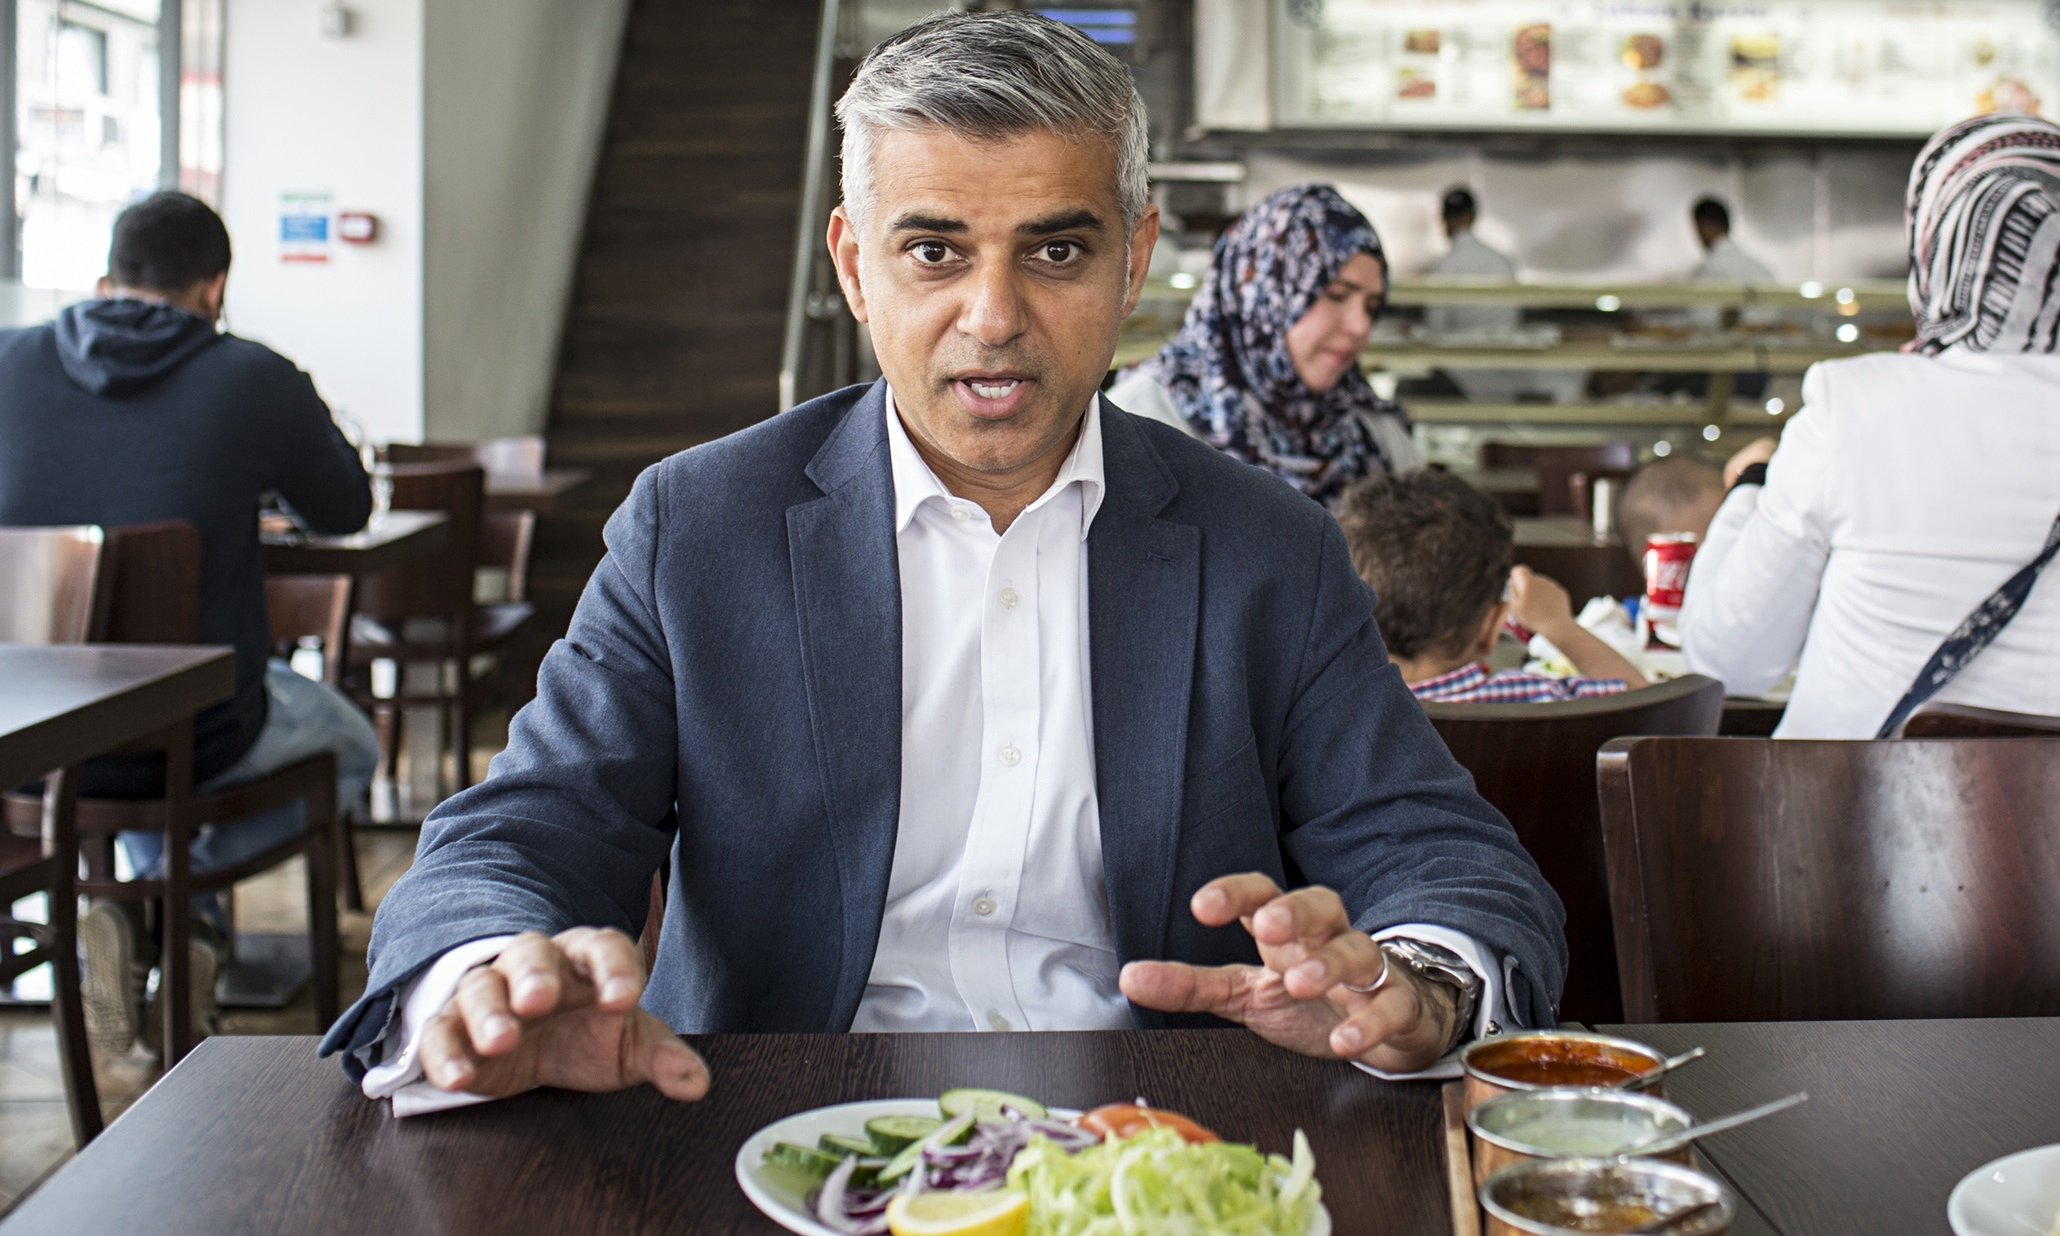 Sadiq Khan: 'Ruthless? No. Decency can get you to the top in politics'